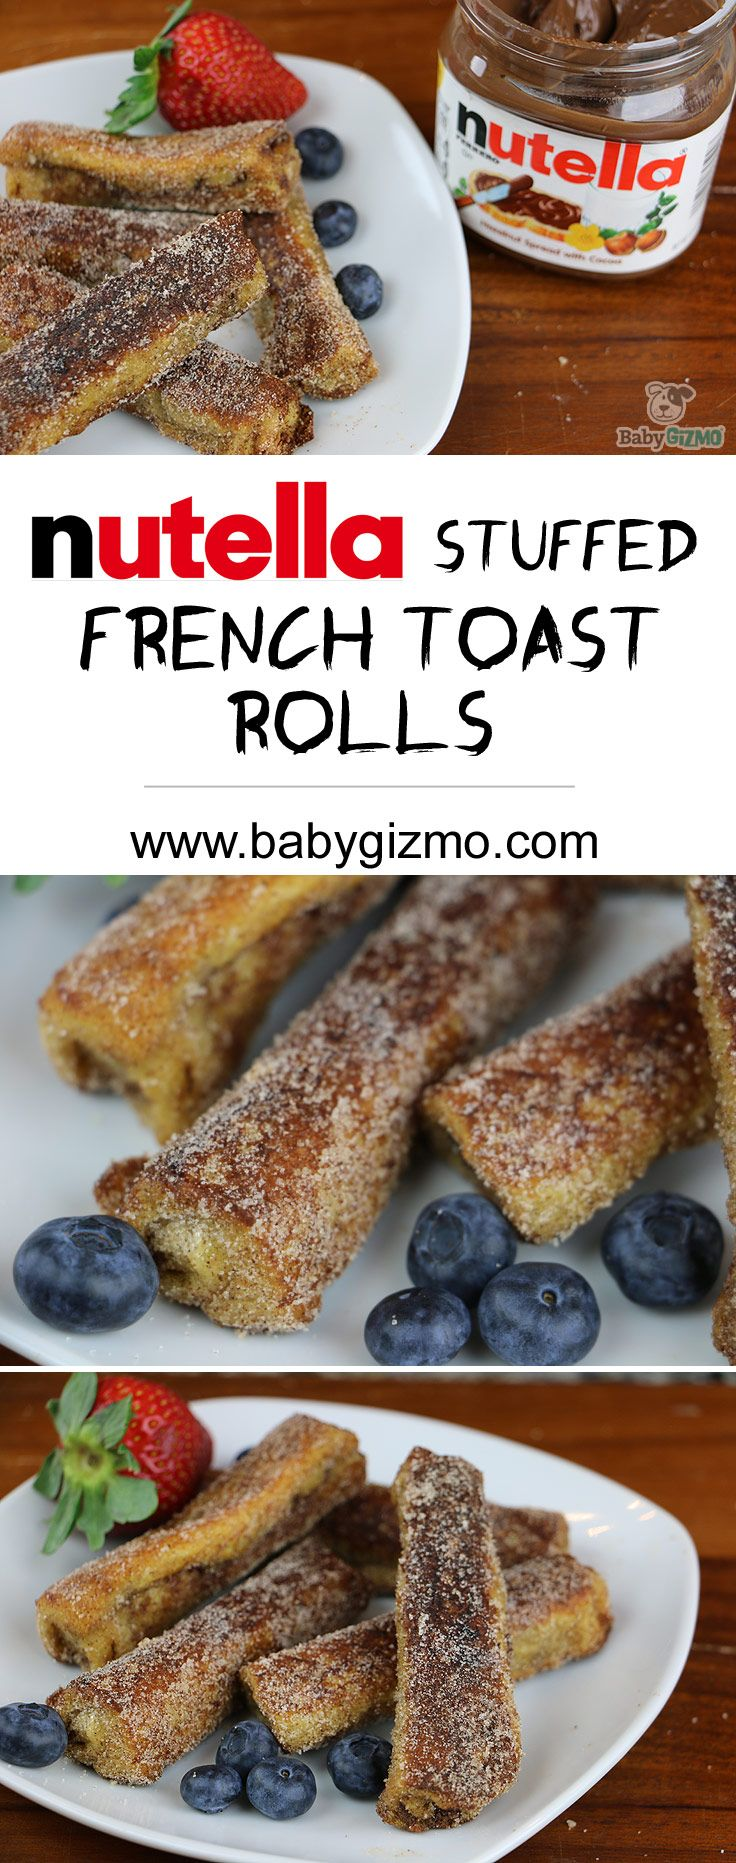 Nutella Stuffed French Toast Rolls! These are amazing!! It's taking french toast to a whole new, chocolately level!! #chocolate #nutella #breakfast #dessert